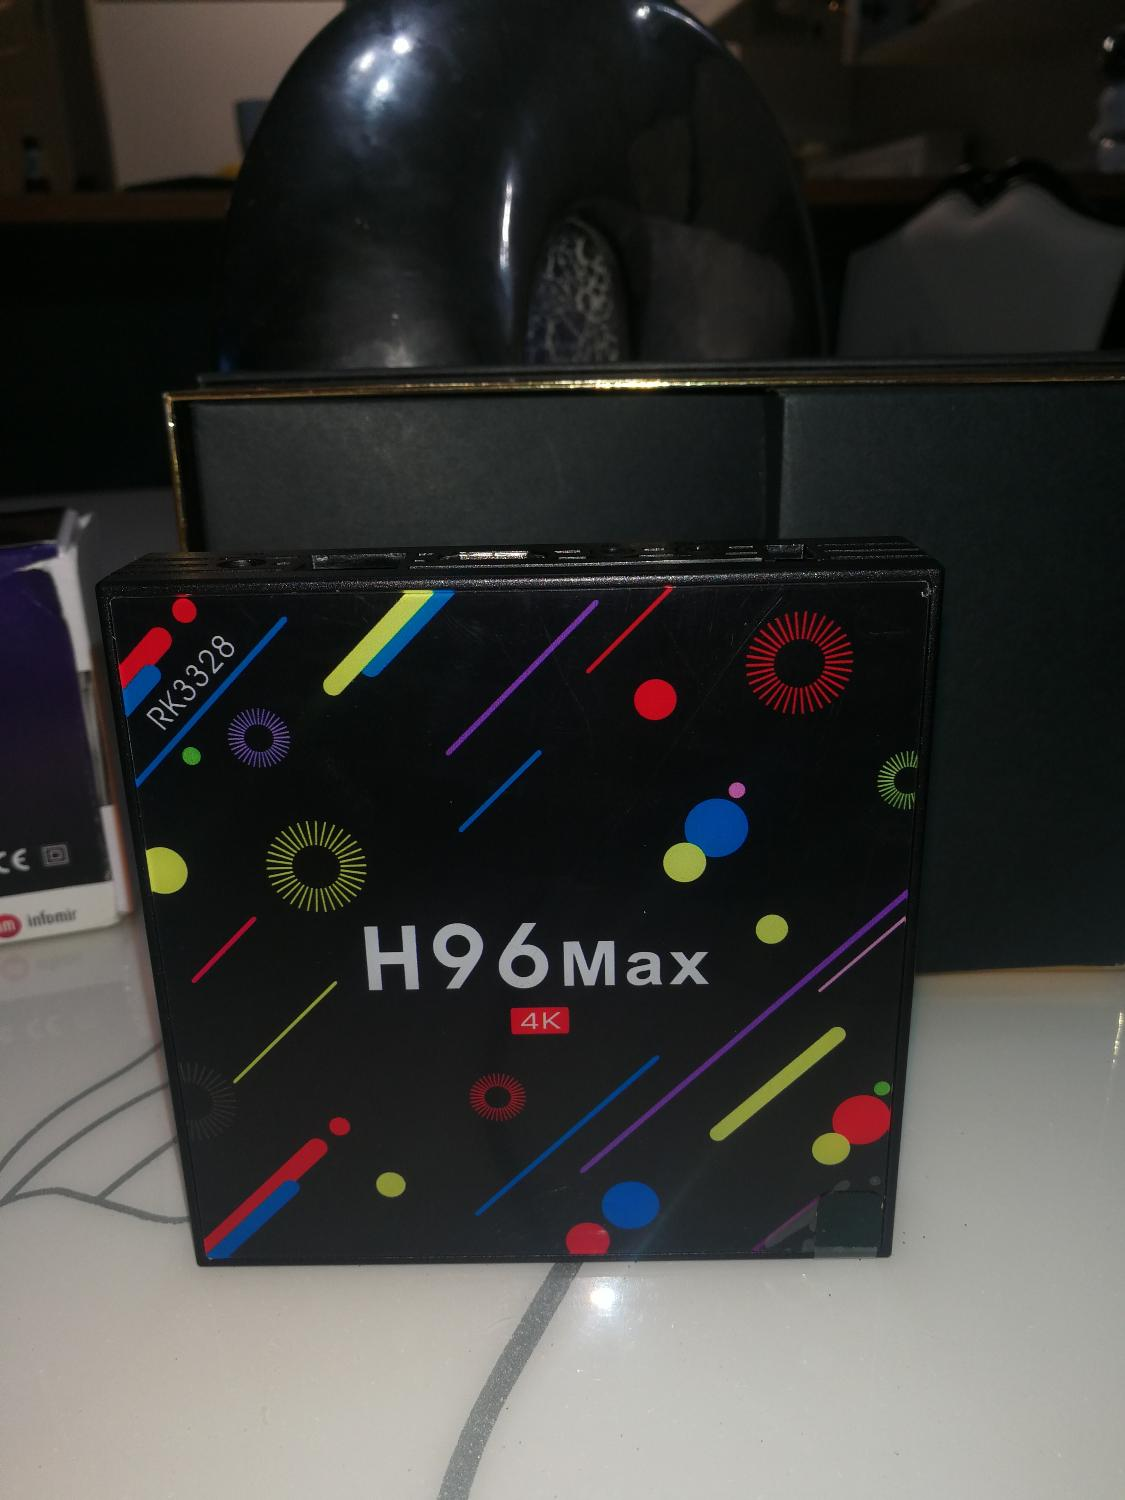 Brand new 4k android box, H96 Max